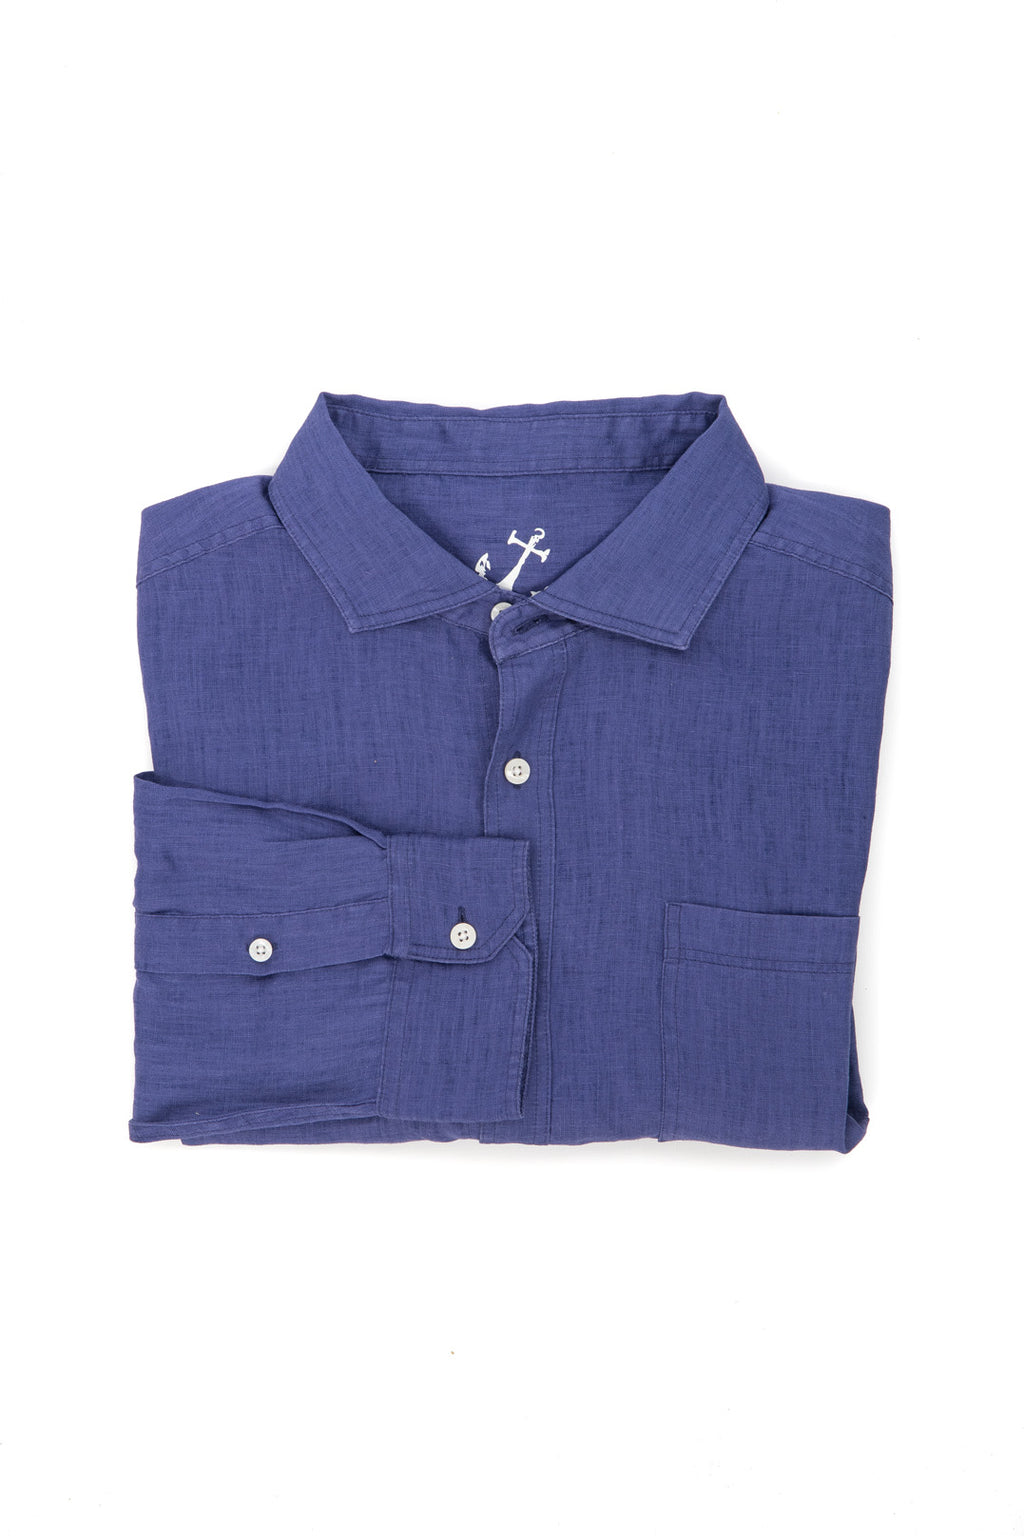 Linen Shirt - Skipper Blue